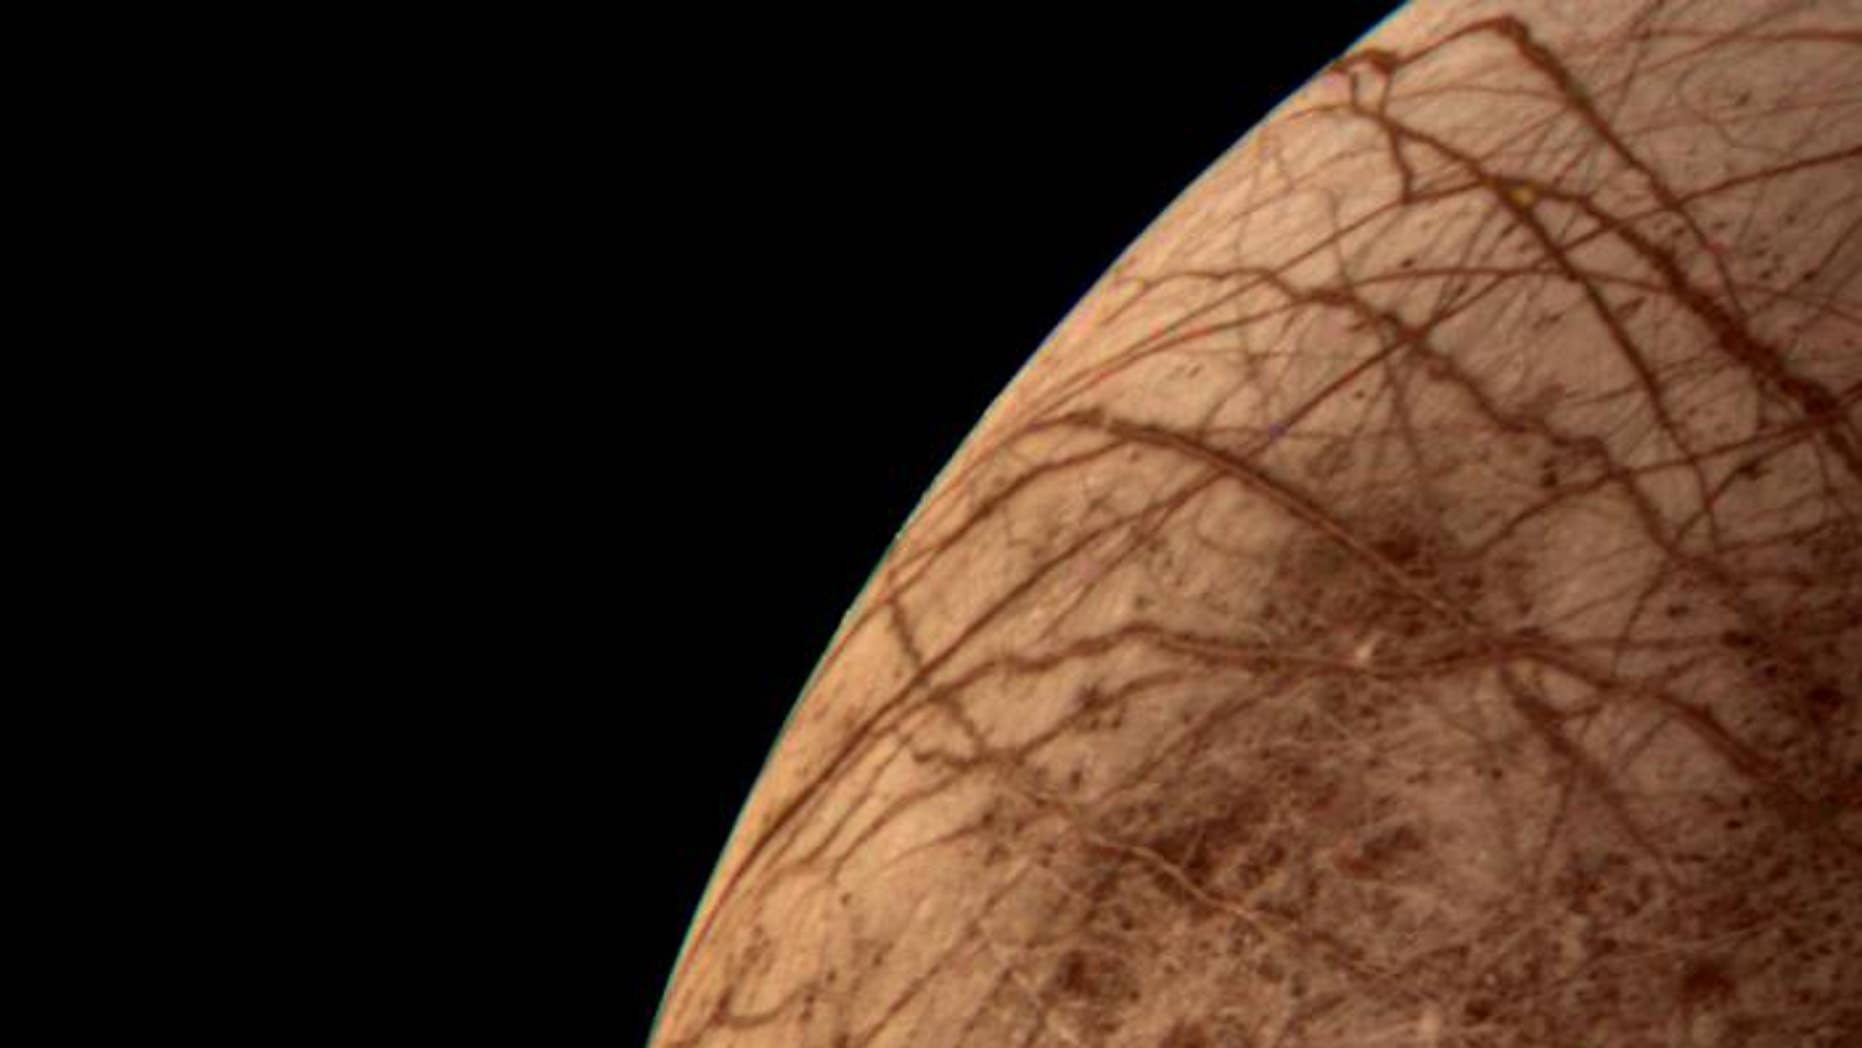 The icy shell on Jupiter's moon Europa may hide a rocky surface that's too strong to be geologically active.